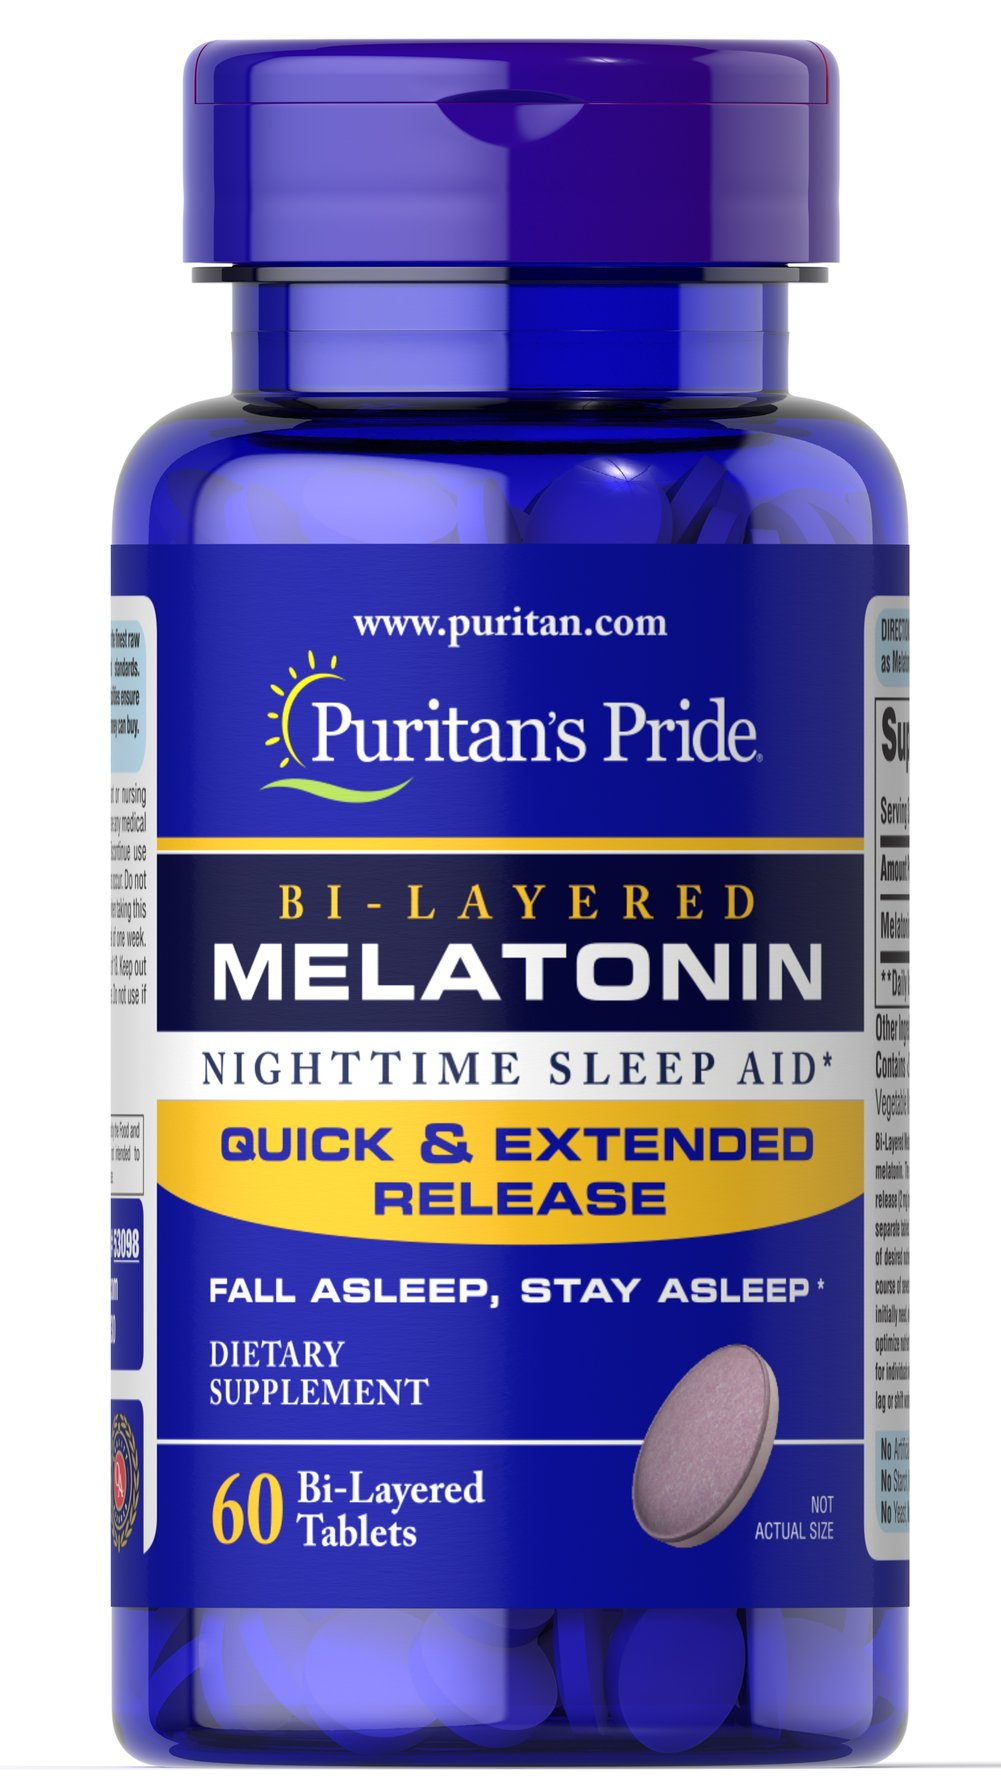 Bi-Layered Melatonin 5 mg  60 Tablets 5 mg $13.99